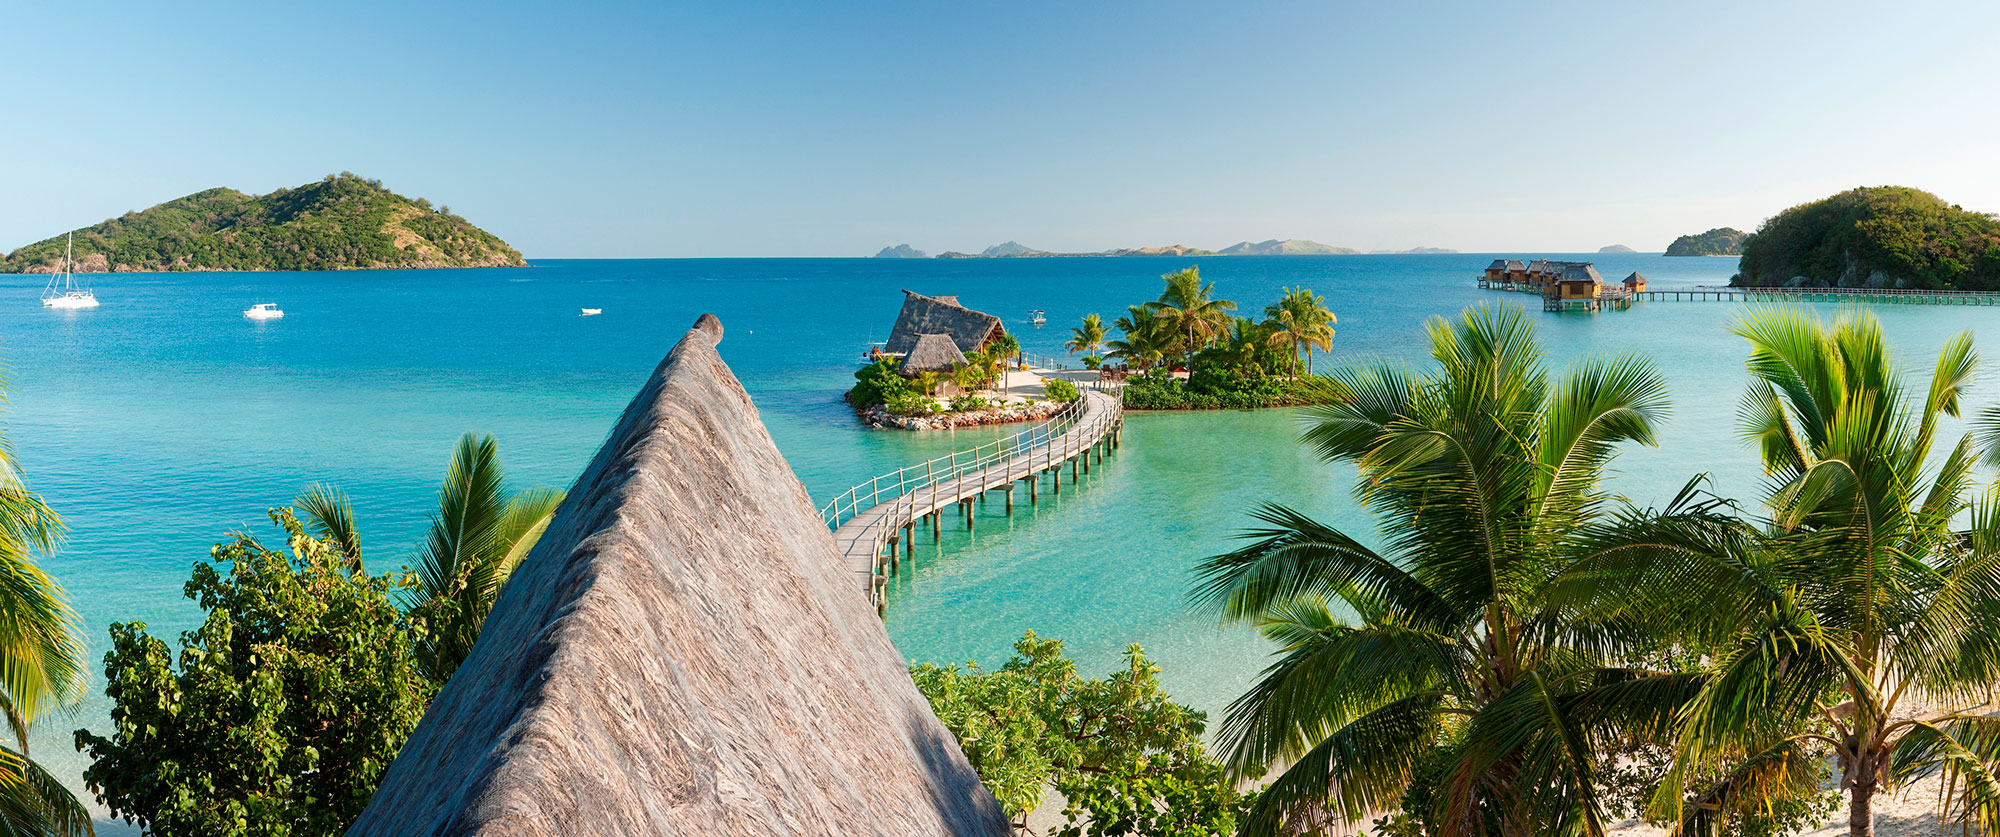 Fiji Overwater Bungalow Vacation: Likuliku and Fiji Beaches - Likuliku Overwater Bungalows in Fiji